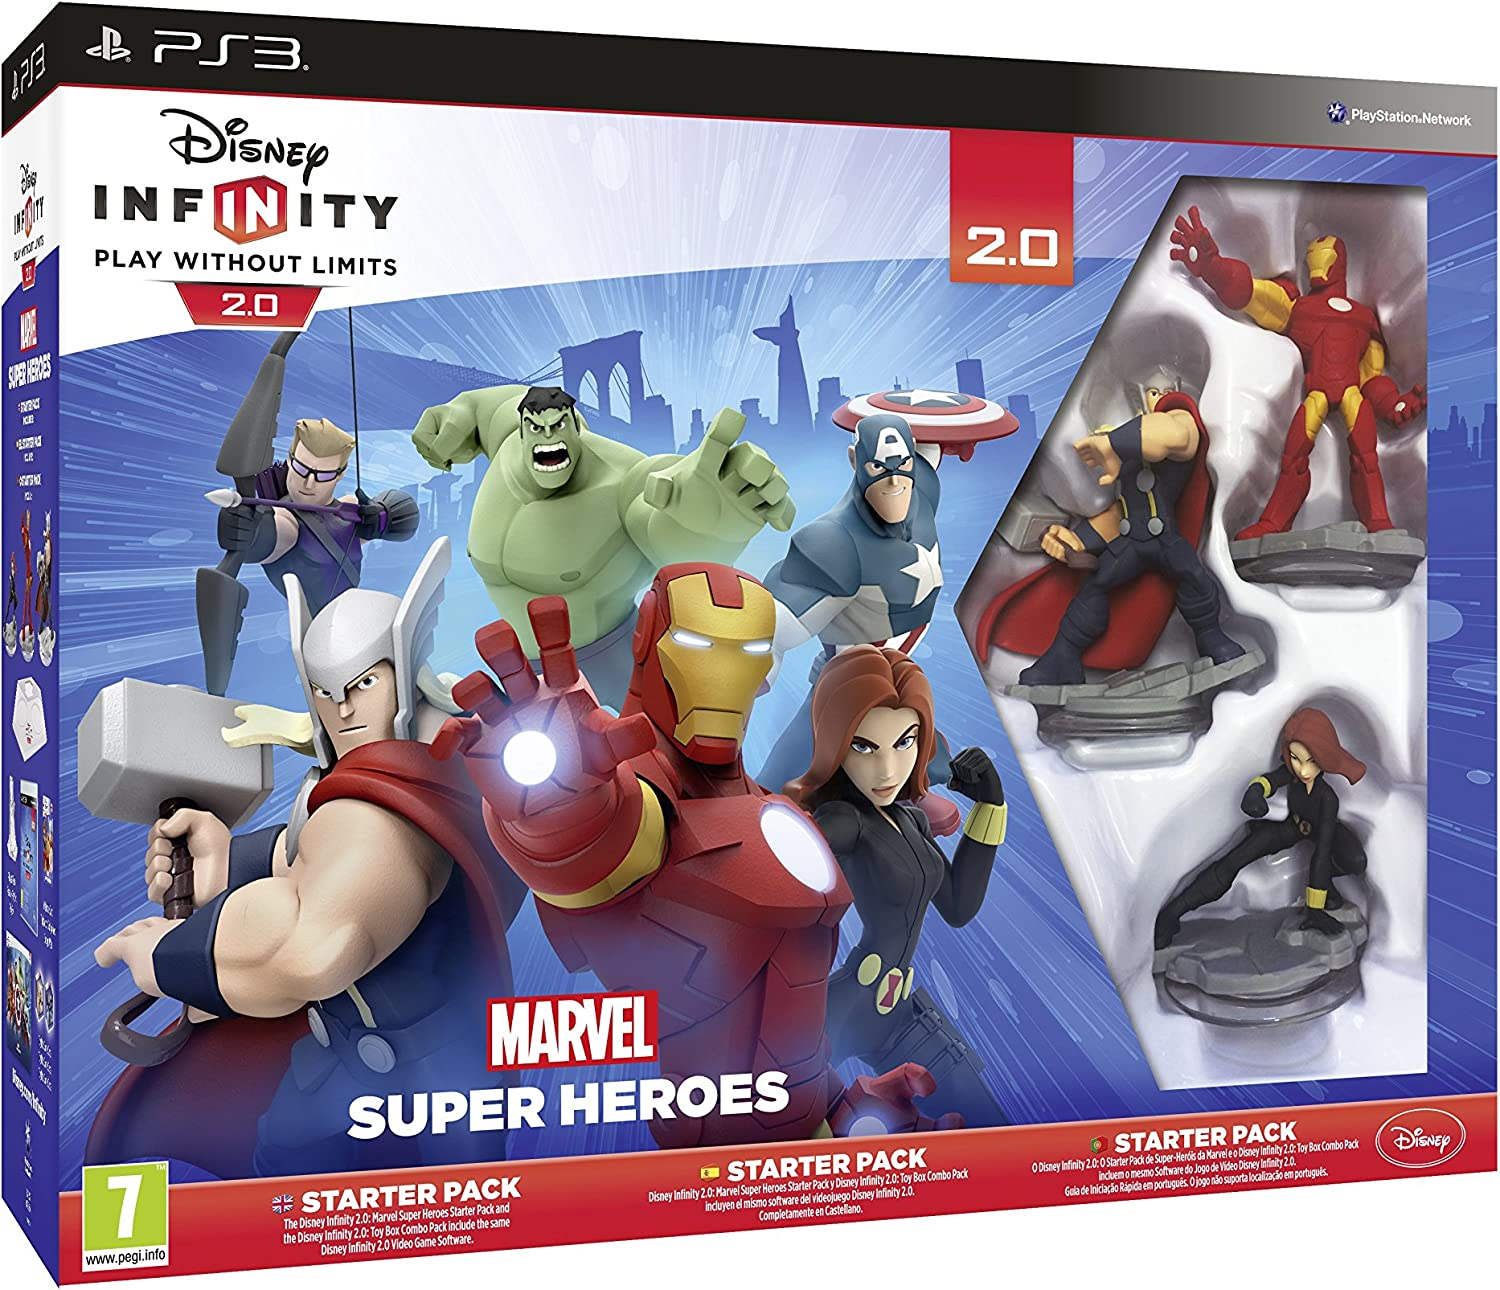 Disney Infinity: Marvel Super Heroes. Starter Pack 2.0 - PlayStation 3: Amazon.es: Videojuegos